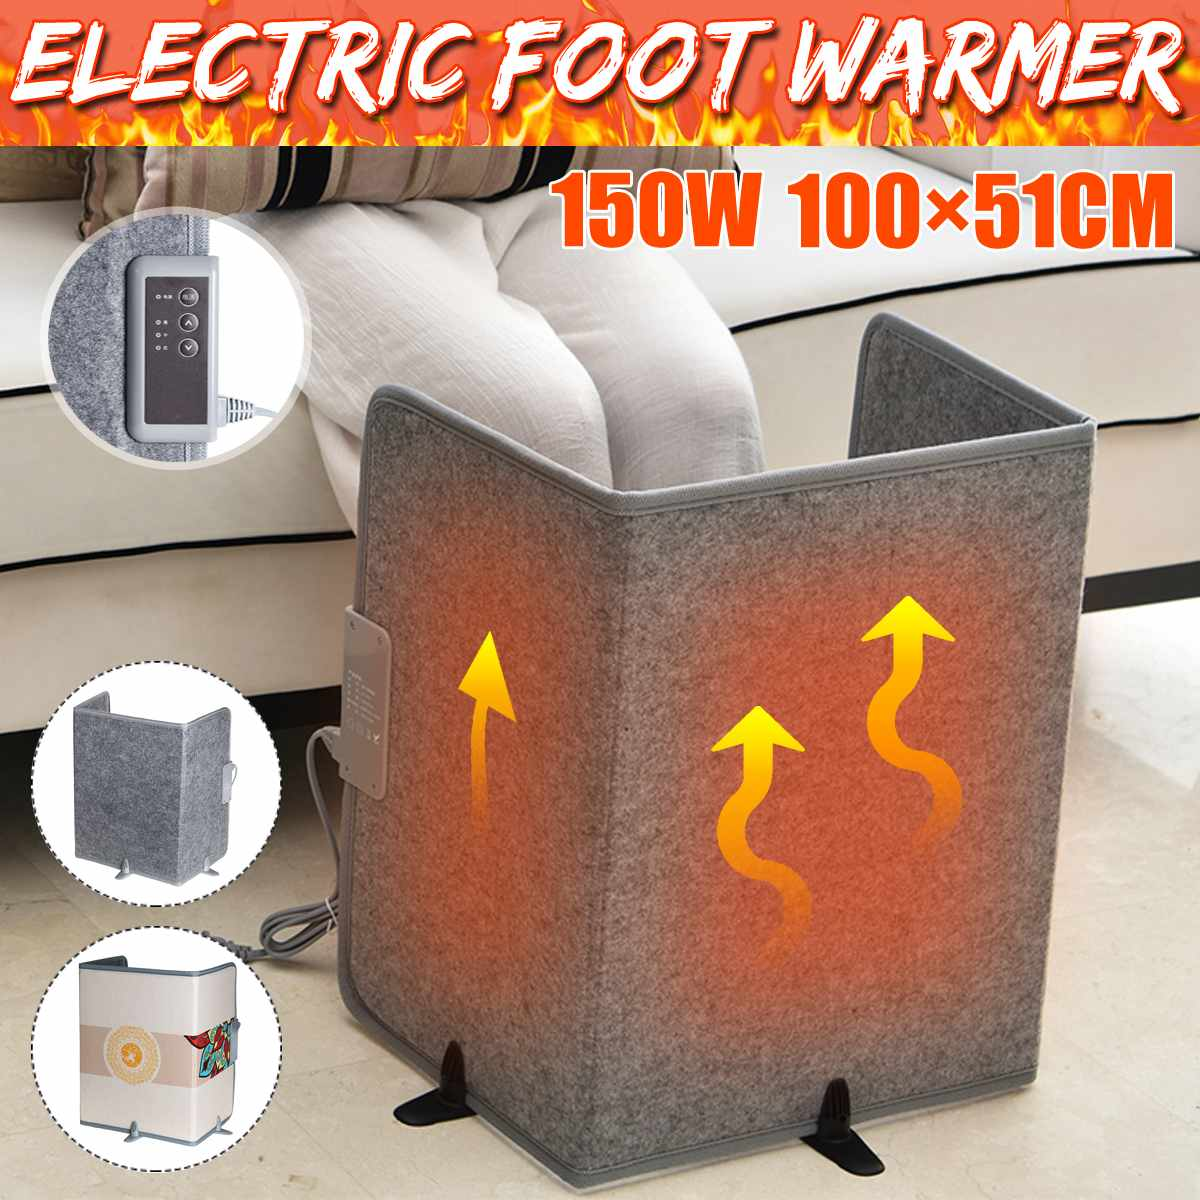 150W Desk Office Home Fold Electric Heater Mini Warm Leg Warmer Safety Heating Clothes Pad For Winter Cold